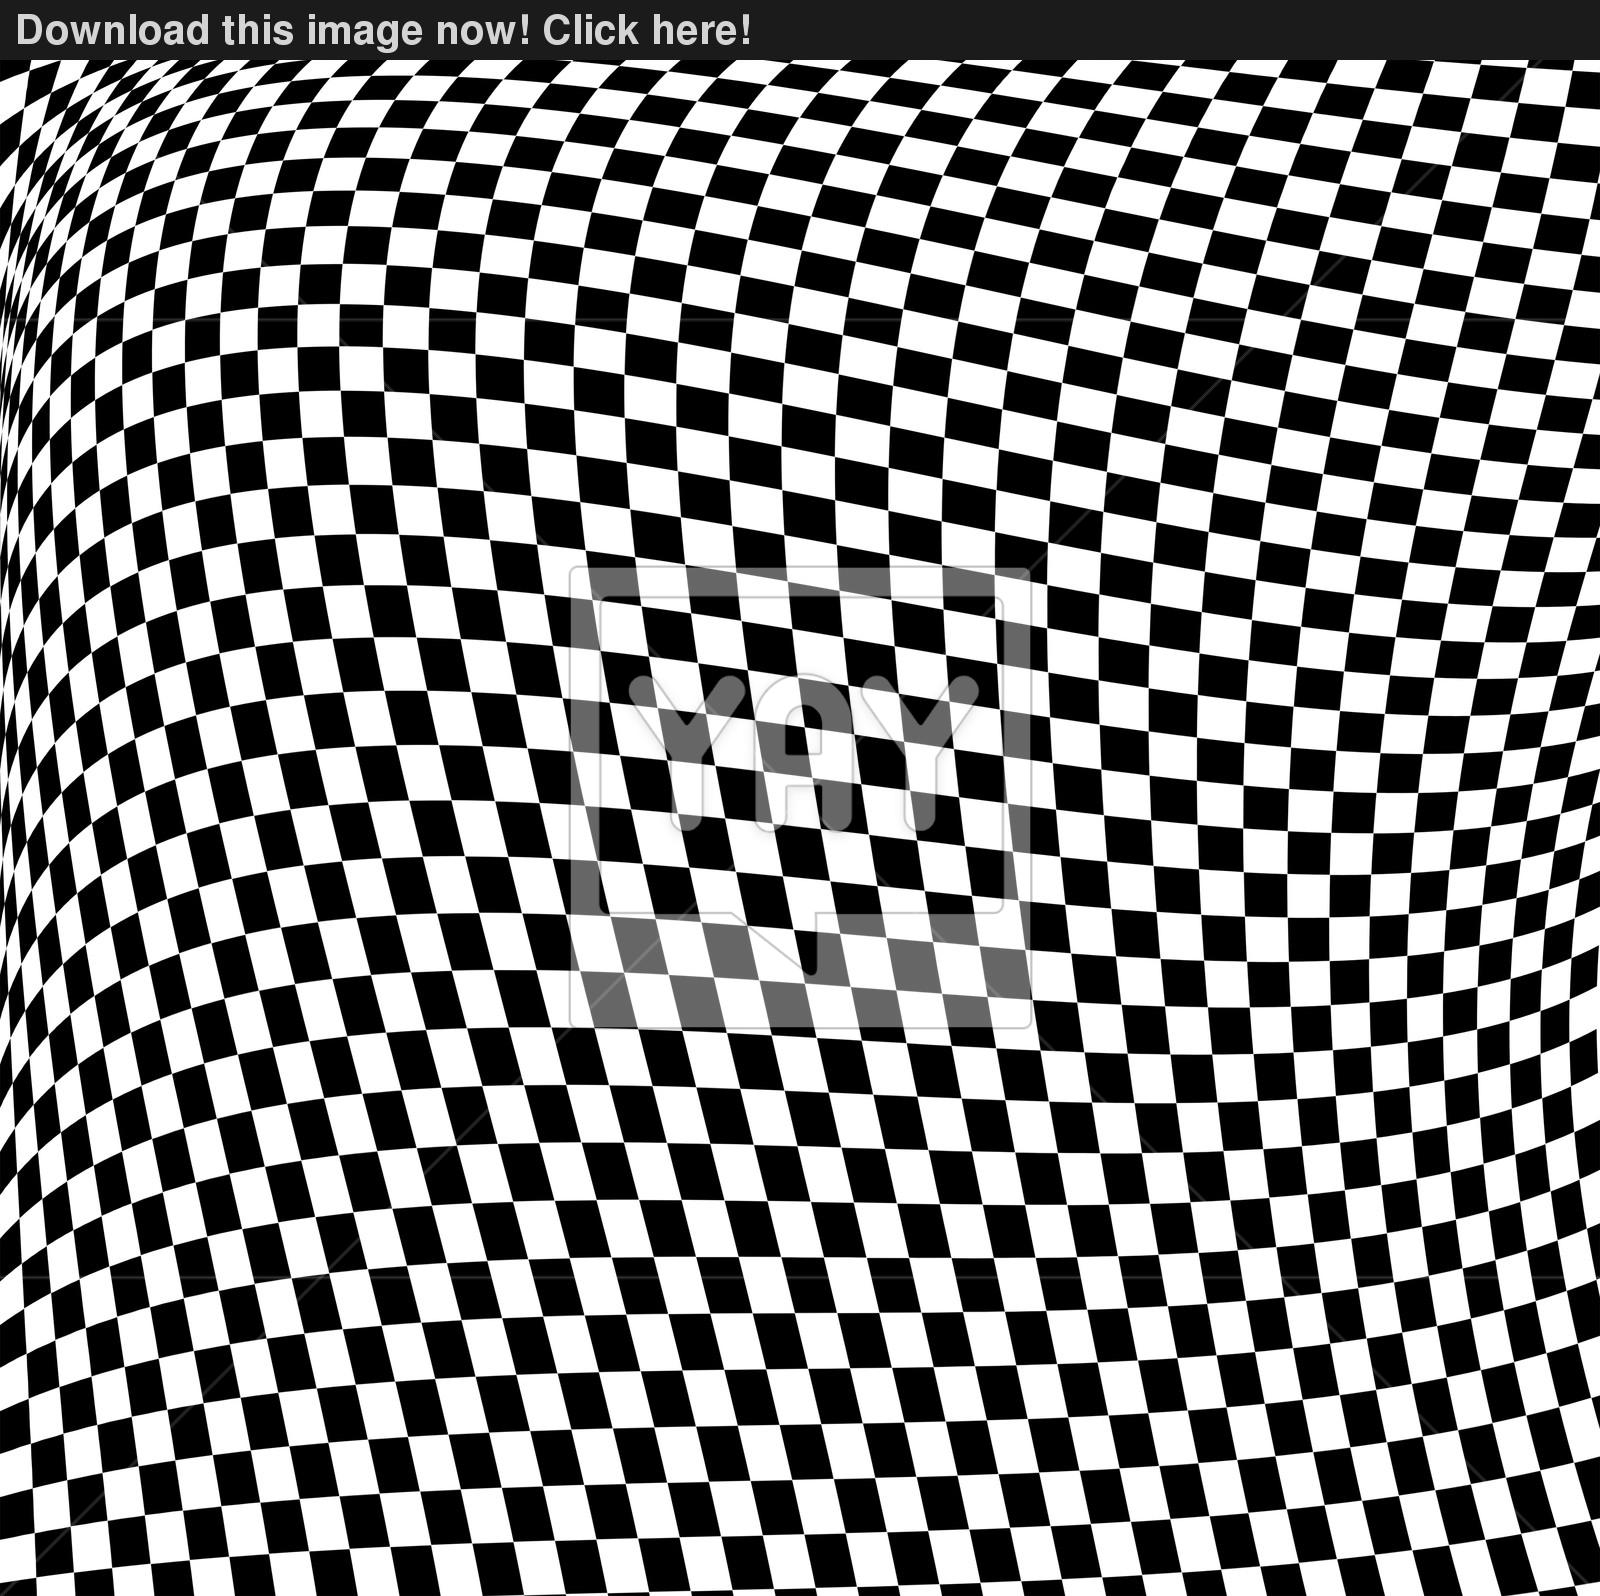 1600x1596 Checkered Texture 3d Background Made In 3d Software Image